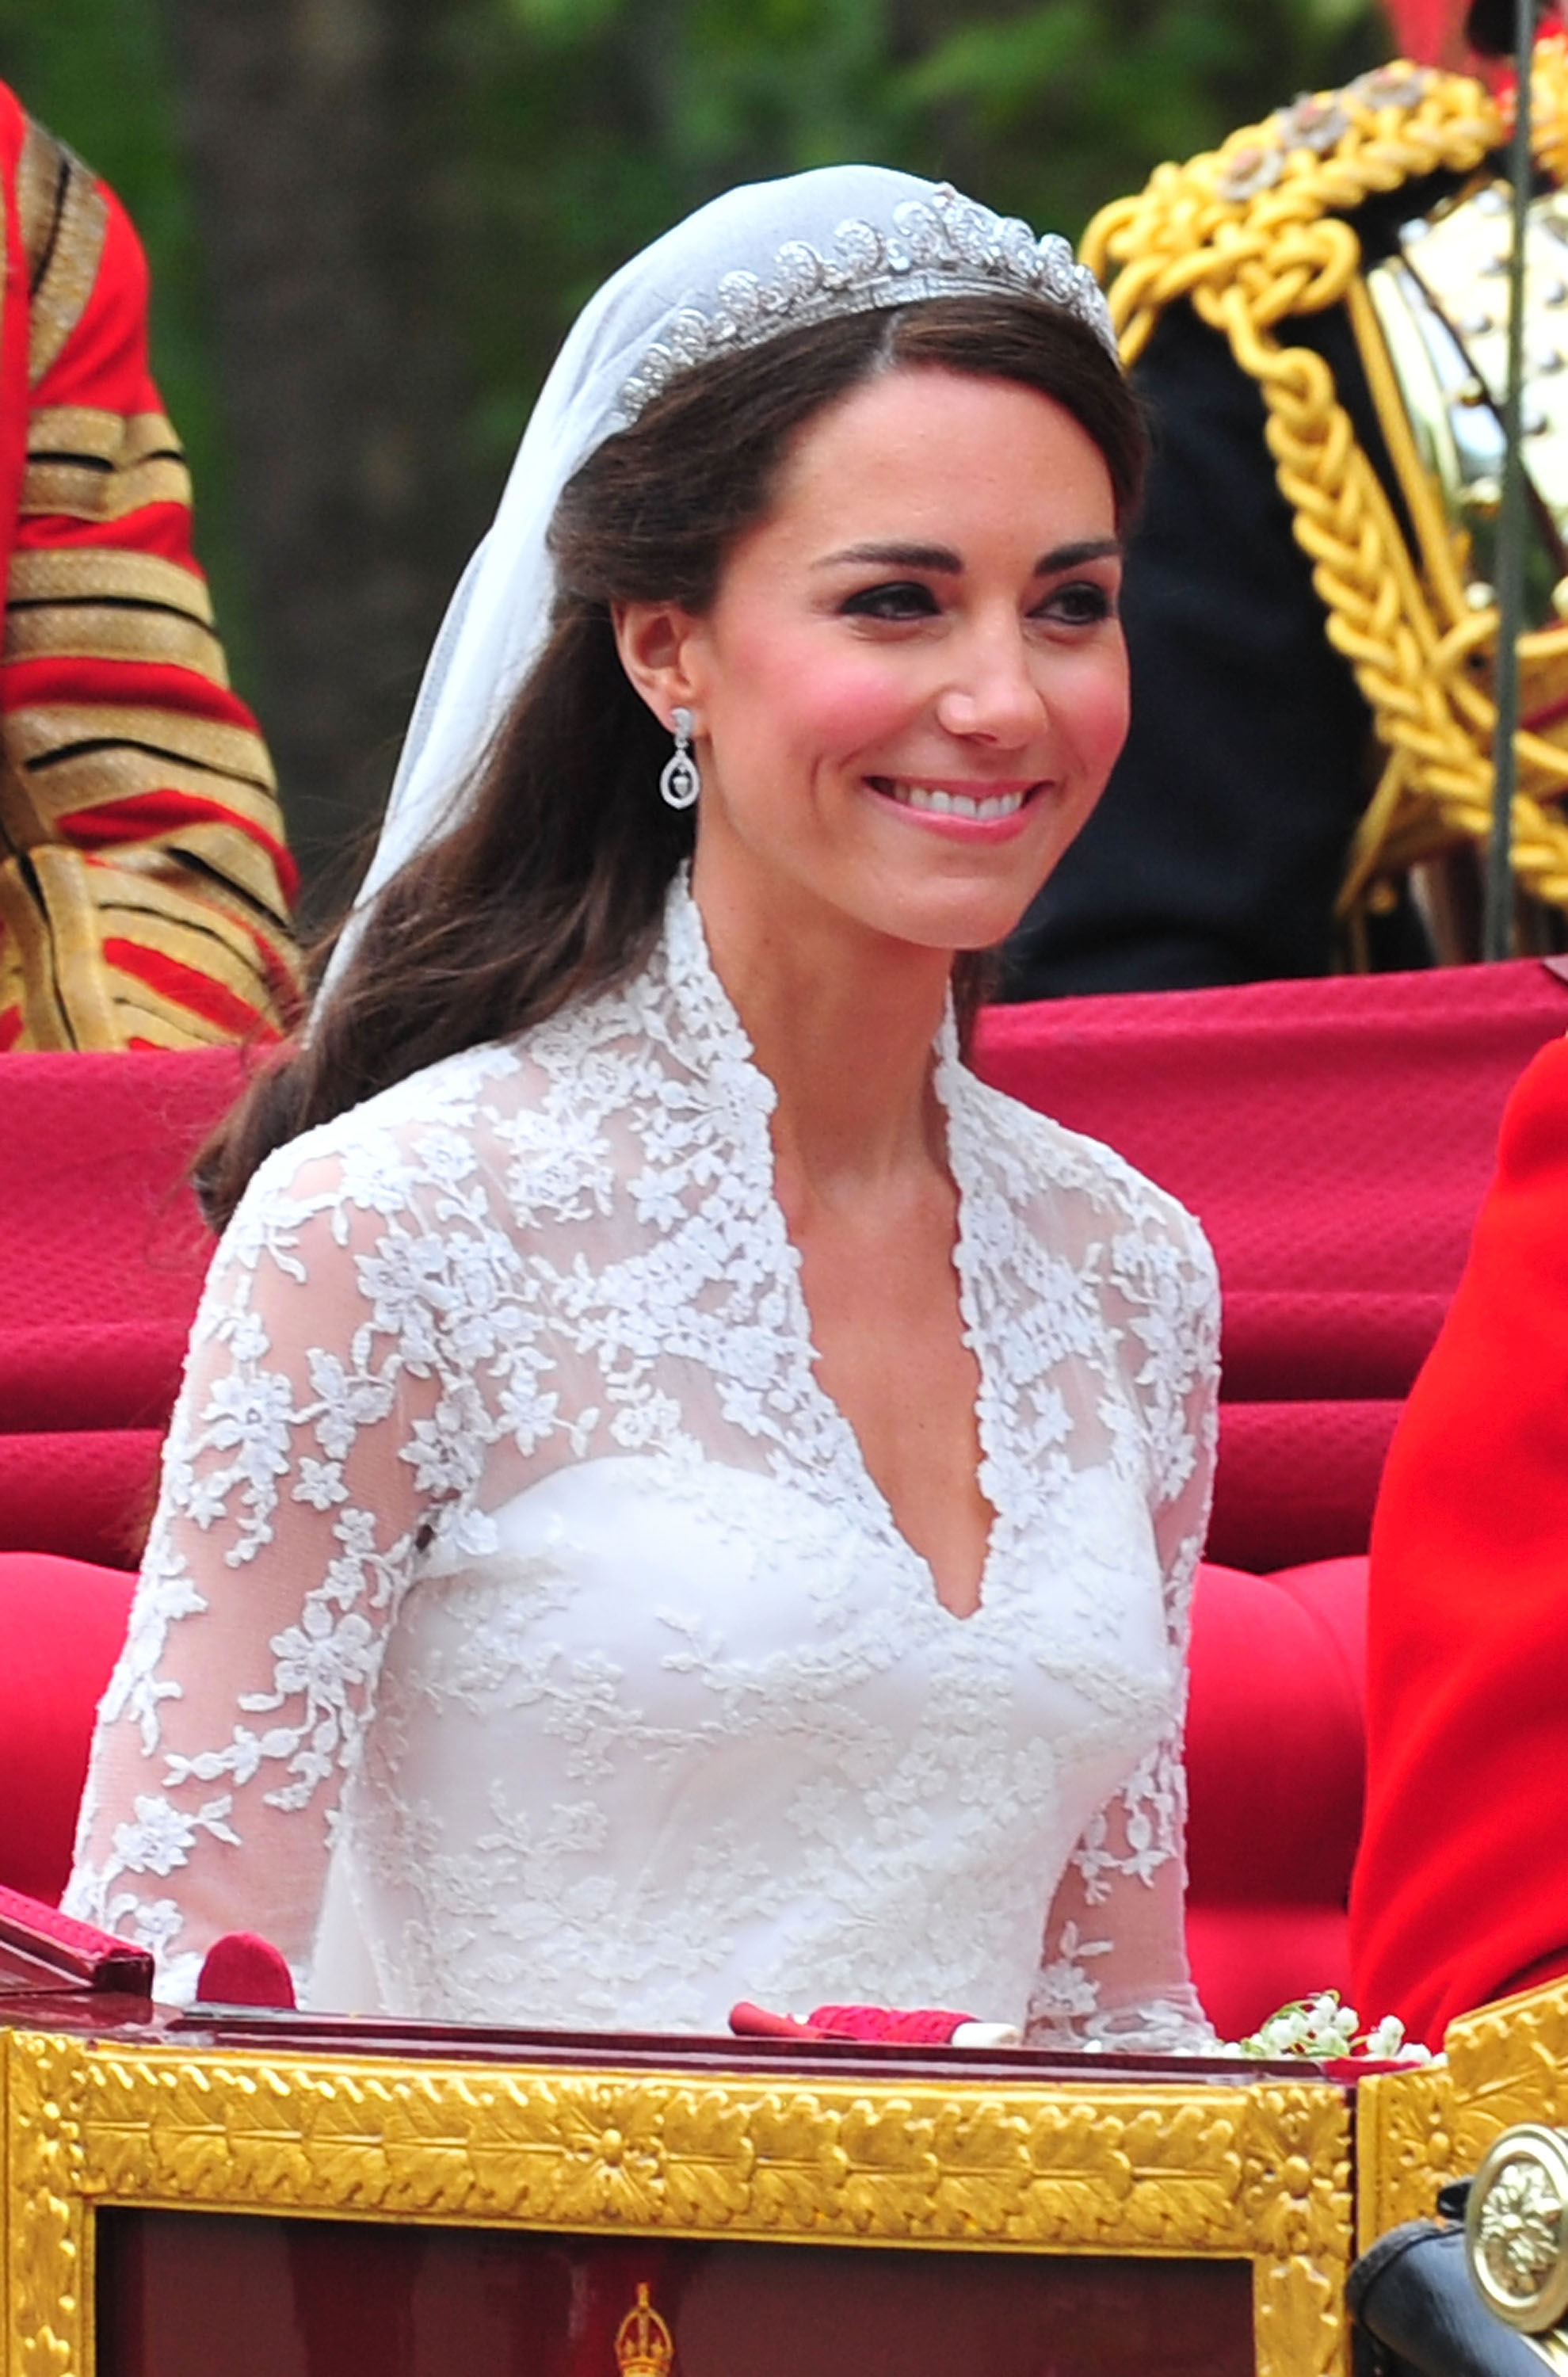 The Wedding of Prince William with Catherine Middleton - Procession